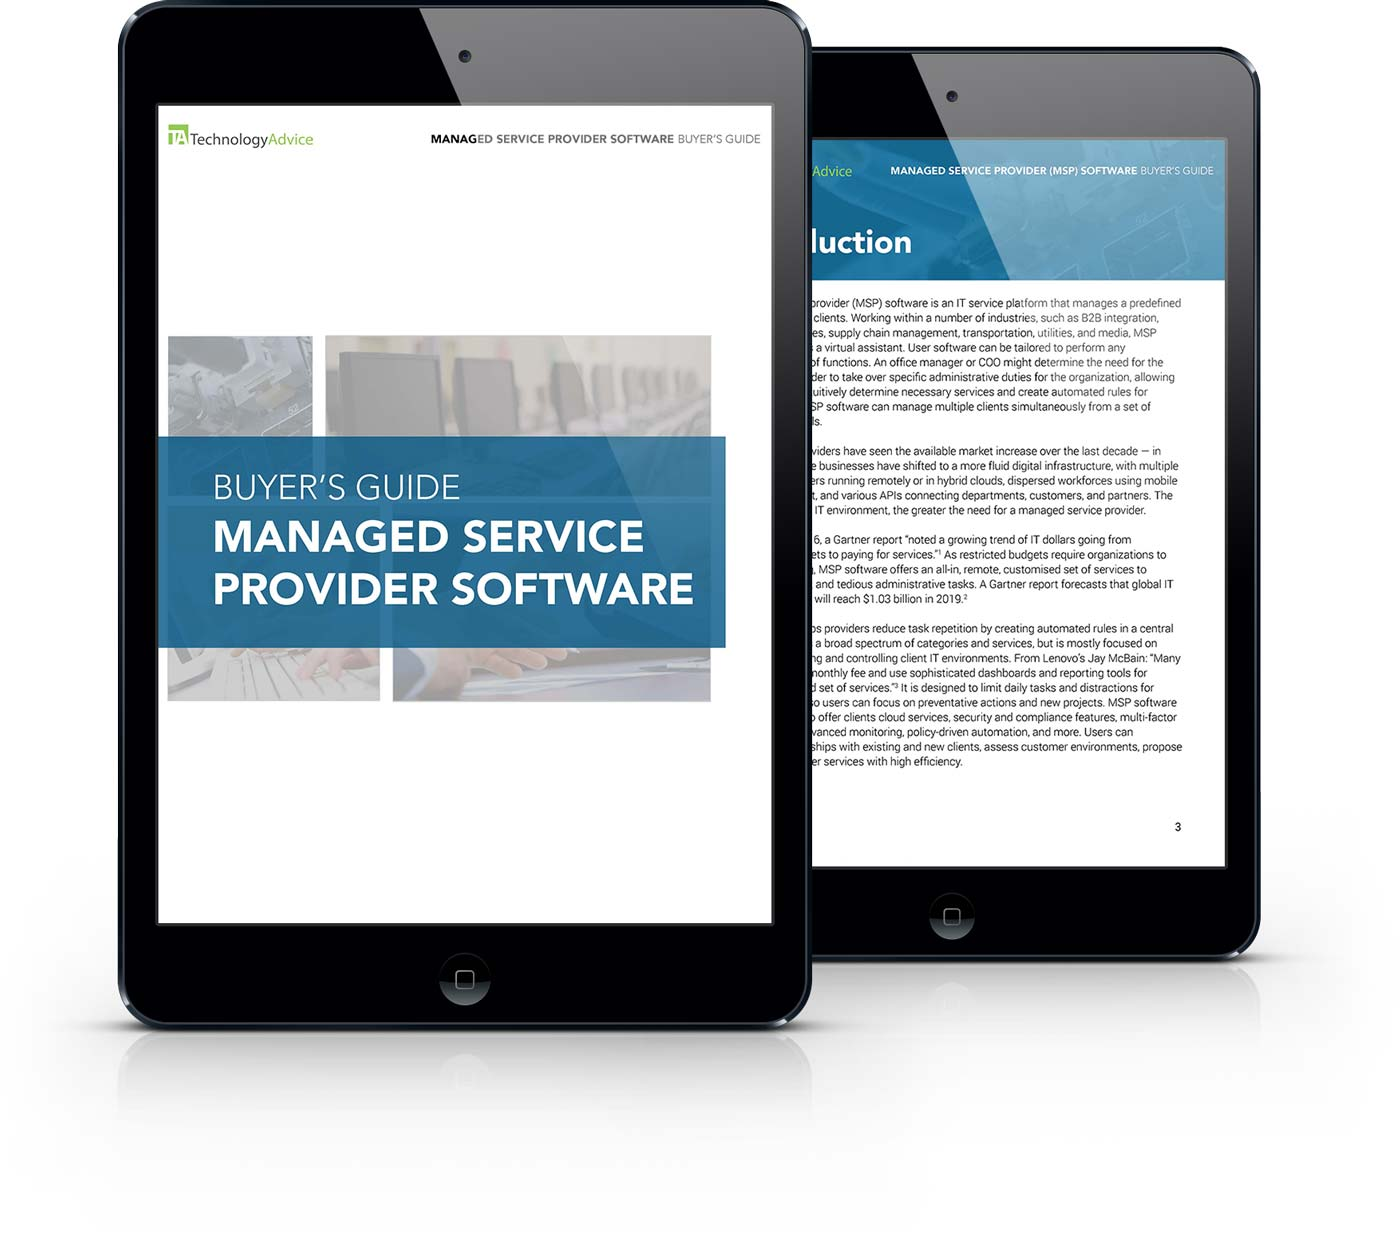 MSP software buyer's guide iPad